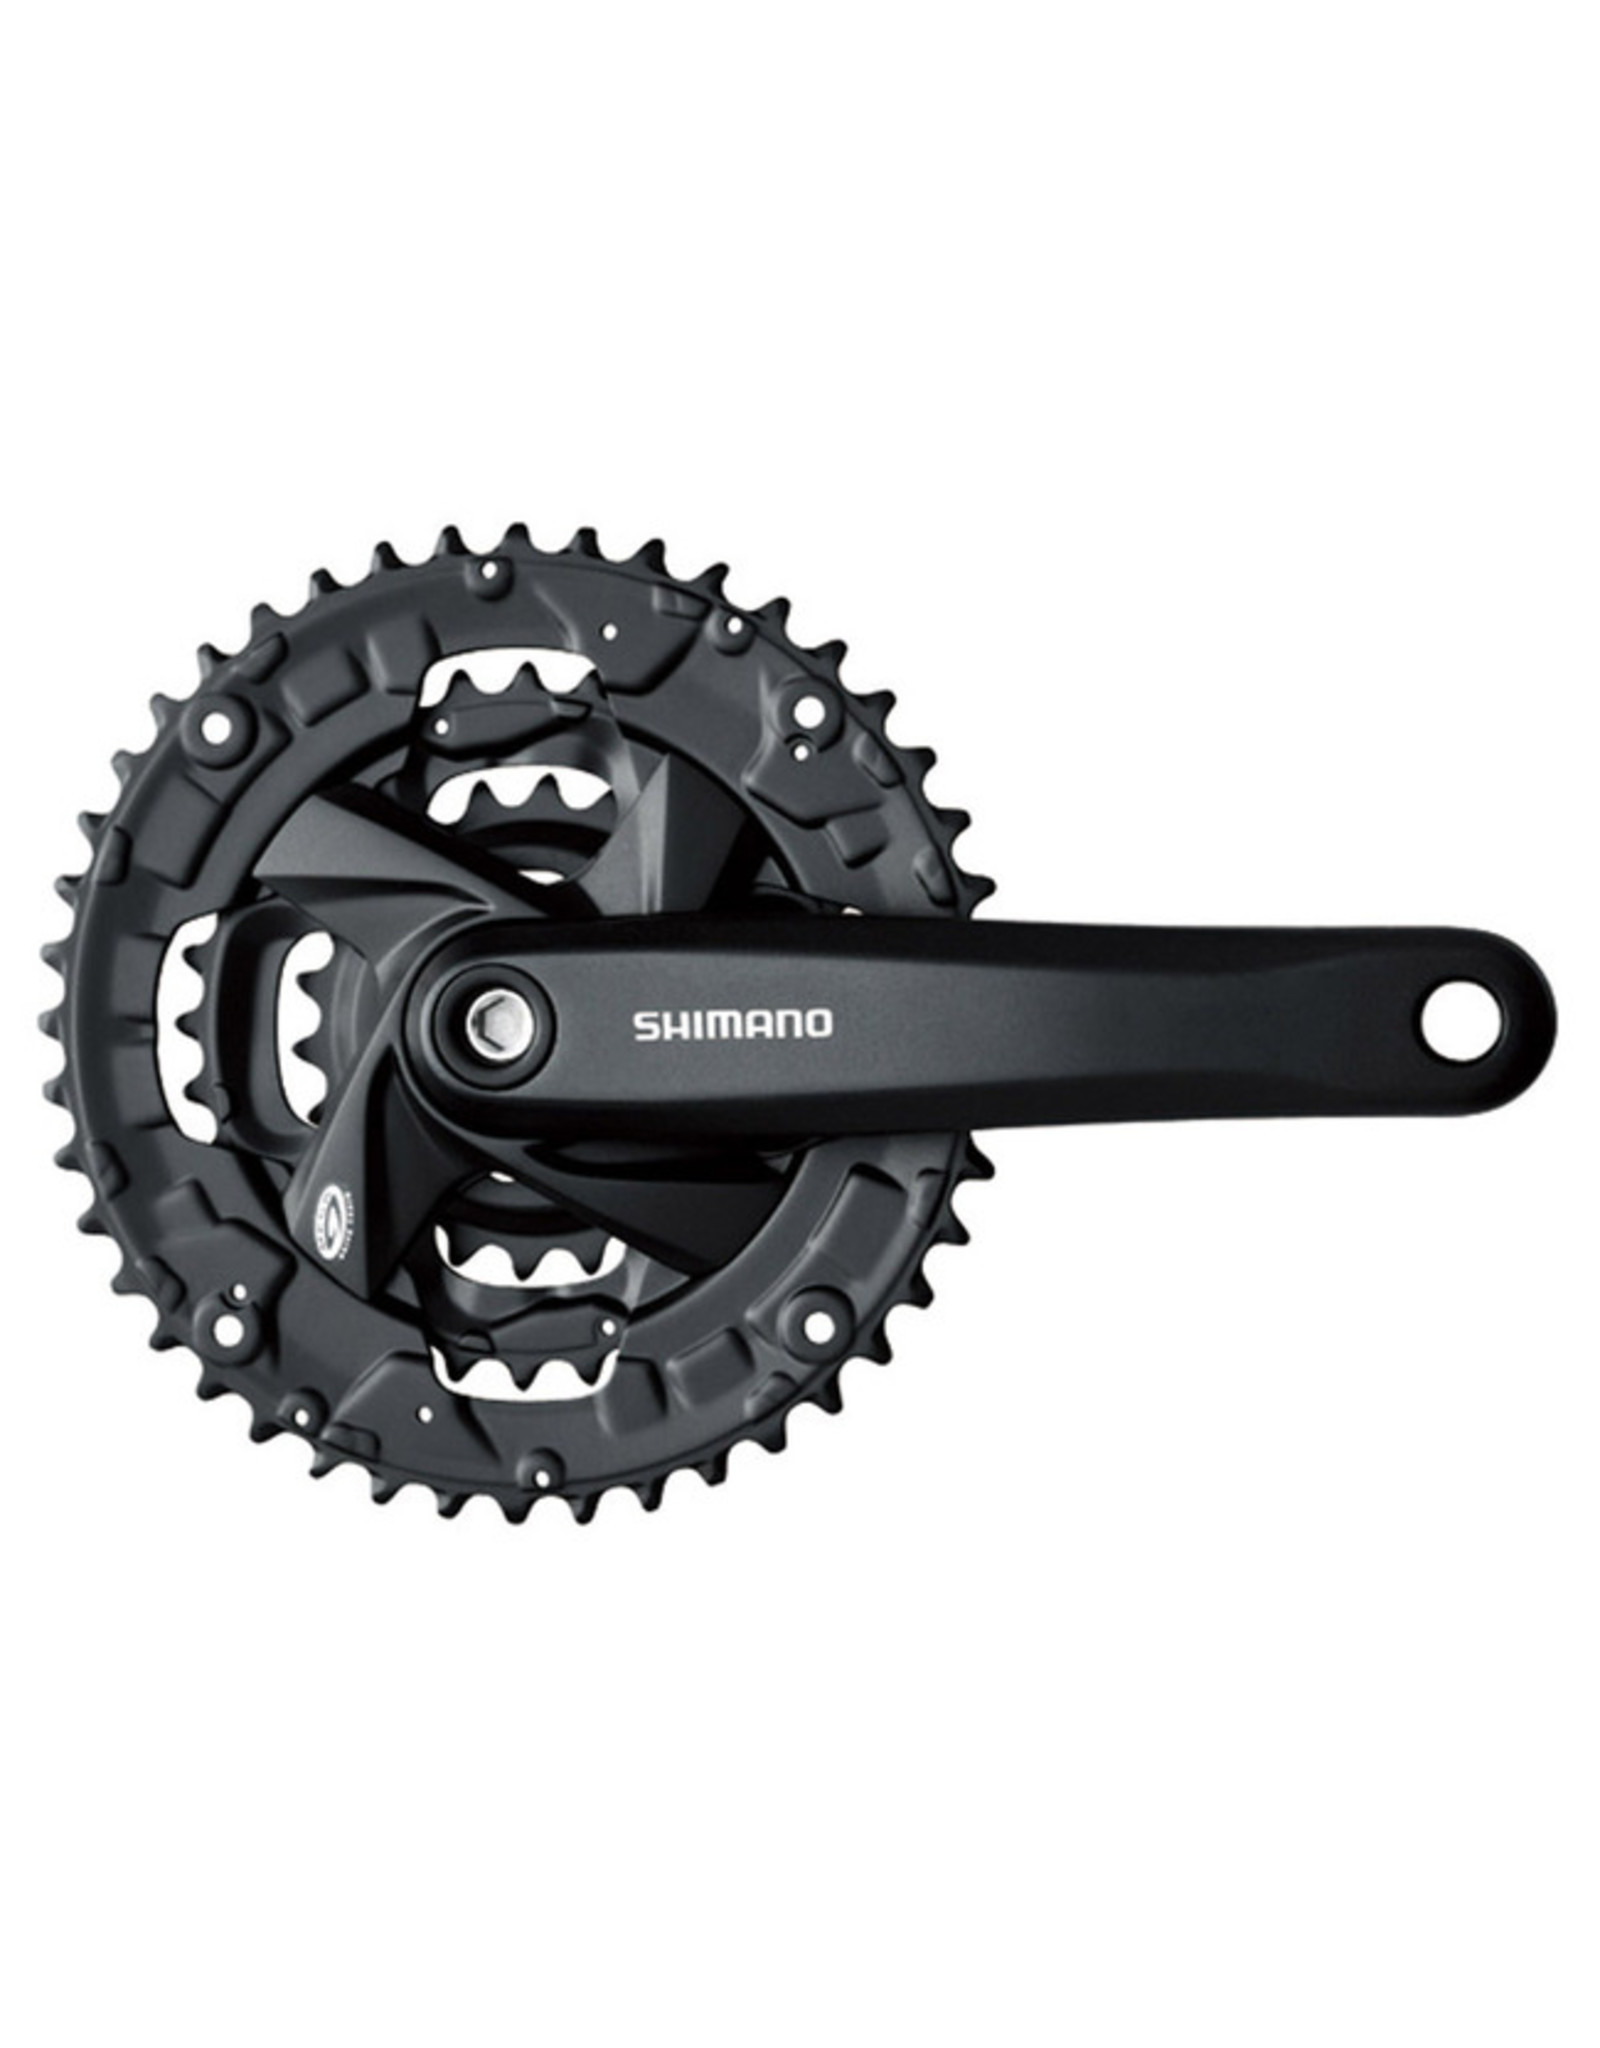 SHIMANO Shimano Front Chainwheel, FC-M371-L, For Rear 9-Speed, 170mm, 48x36x26t W/Chain Guard(Integrated Type), Chain Case Compatible, Black W/Fixing Bolt, Shimano Logo